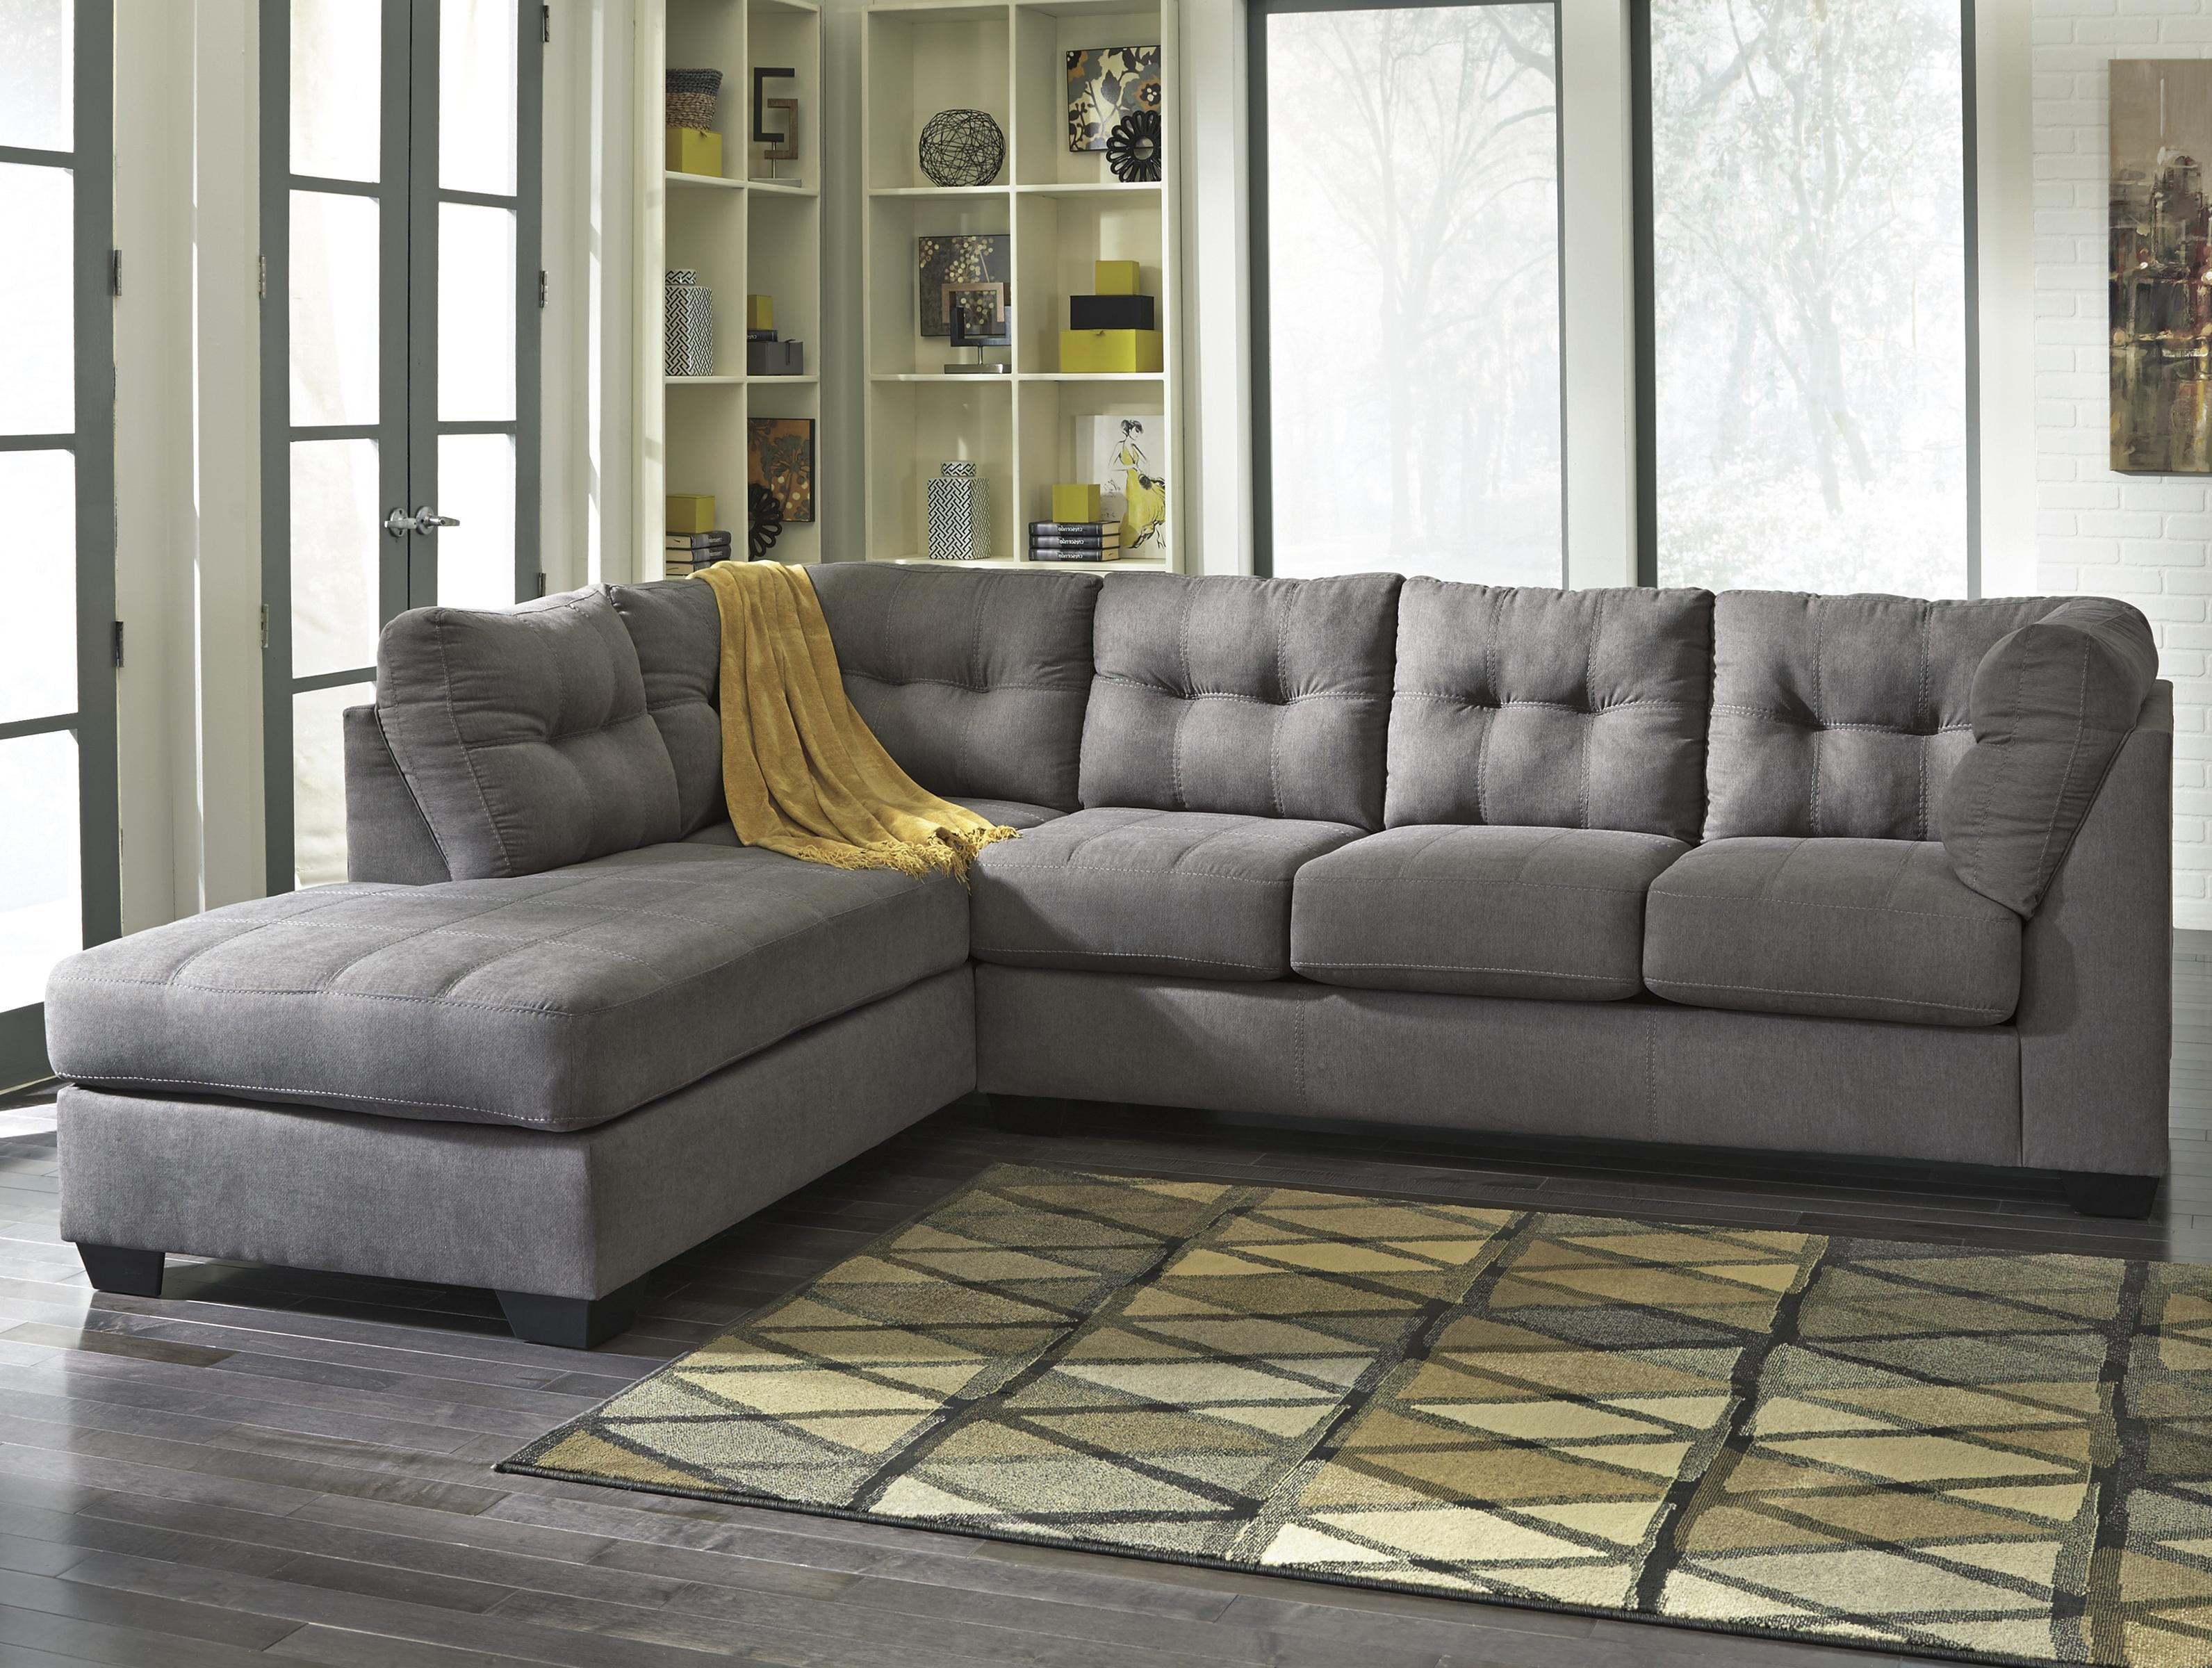 Benchcraft Maier – Charcoal 2 Piece Sectional With Left Chaise With Sectional Sofa With 2 Chaises (Image 6 of 20)